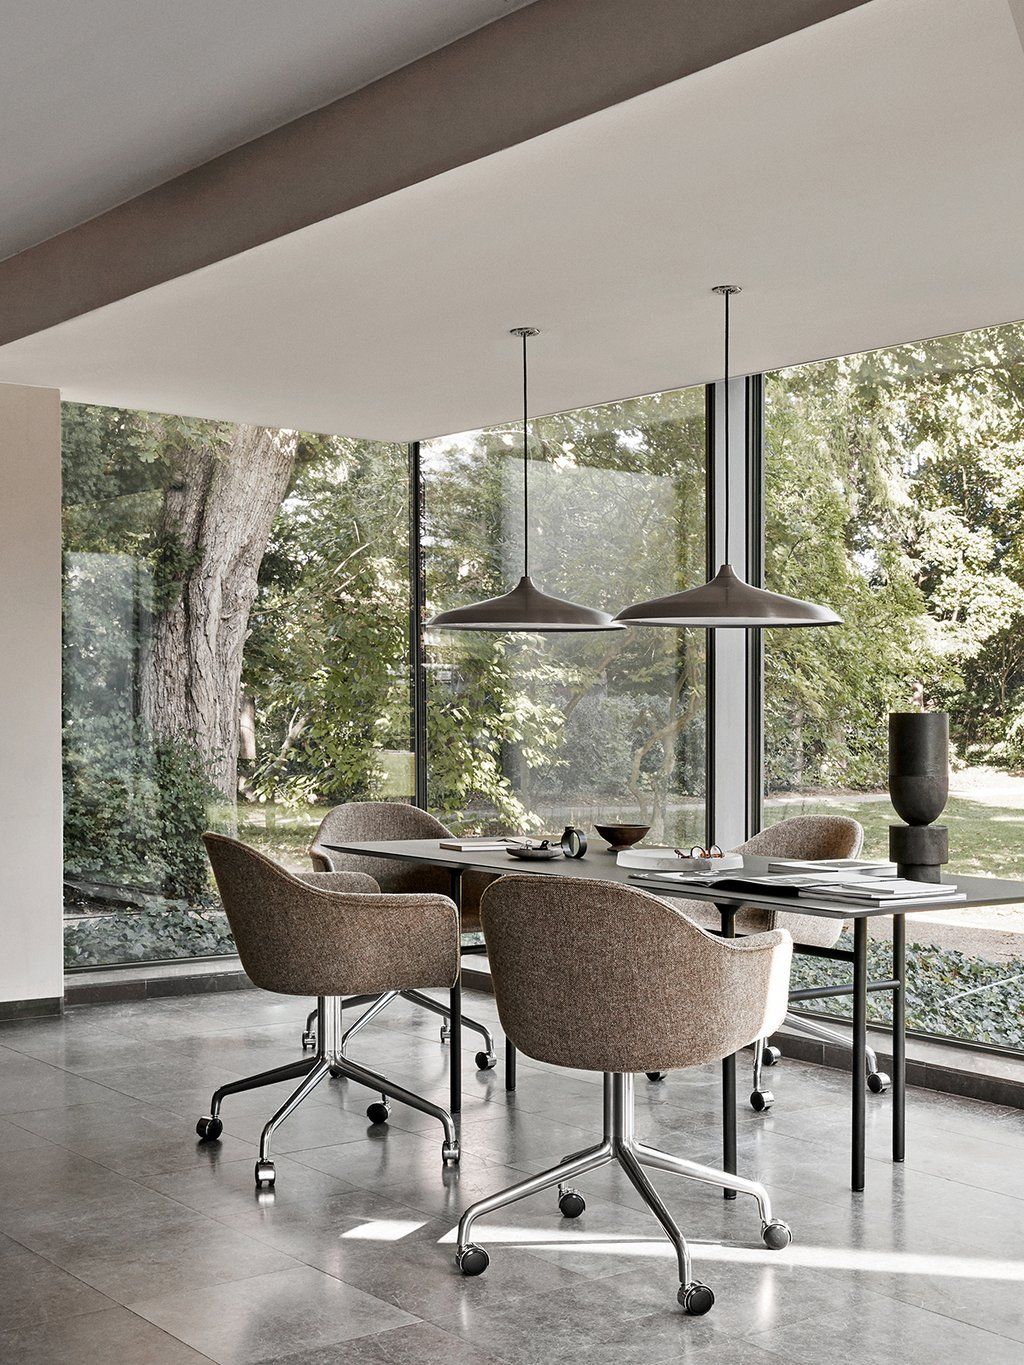 Designer Upholstered Dining Room Chairs, Upholstered Dining Room Chairs With Arms And Casters